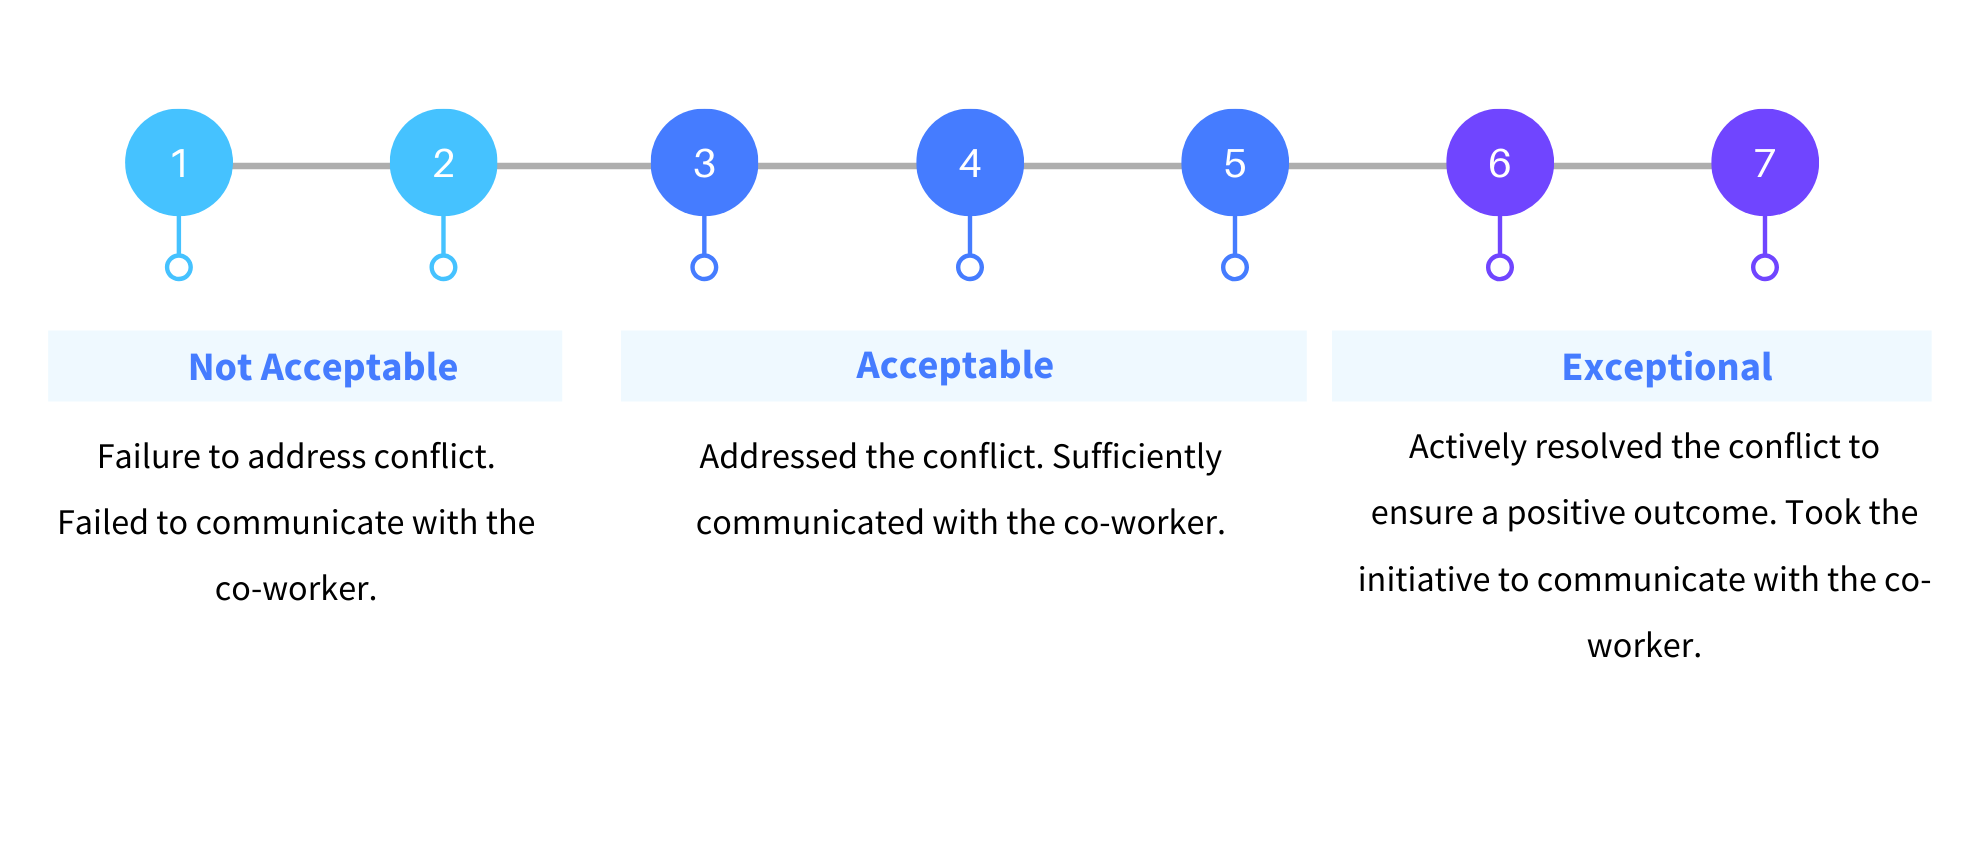 Behavioral Question BARS Metric Scale for Communication and Conflict Resolution